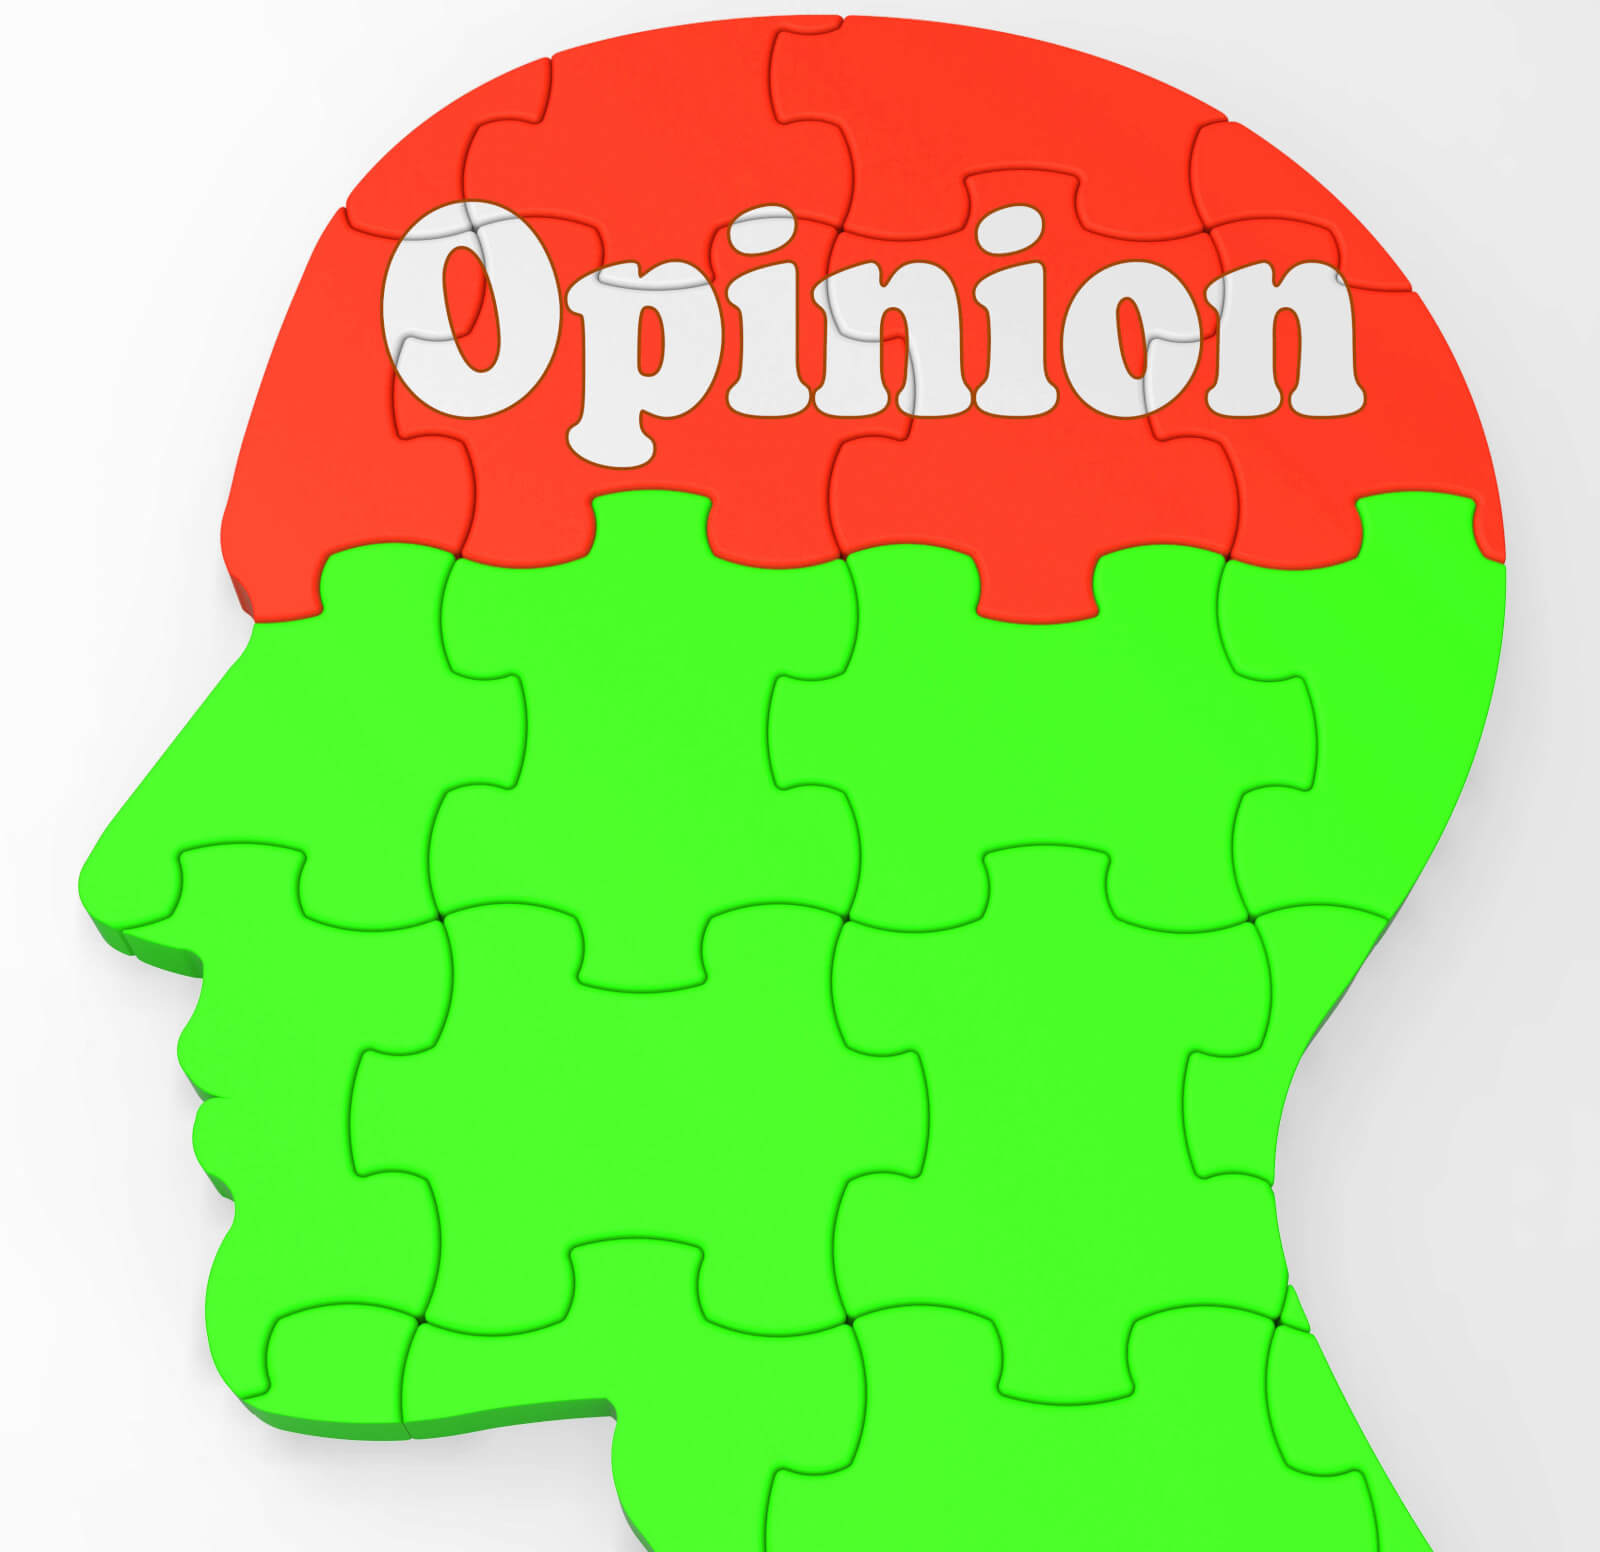 opinionmind